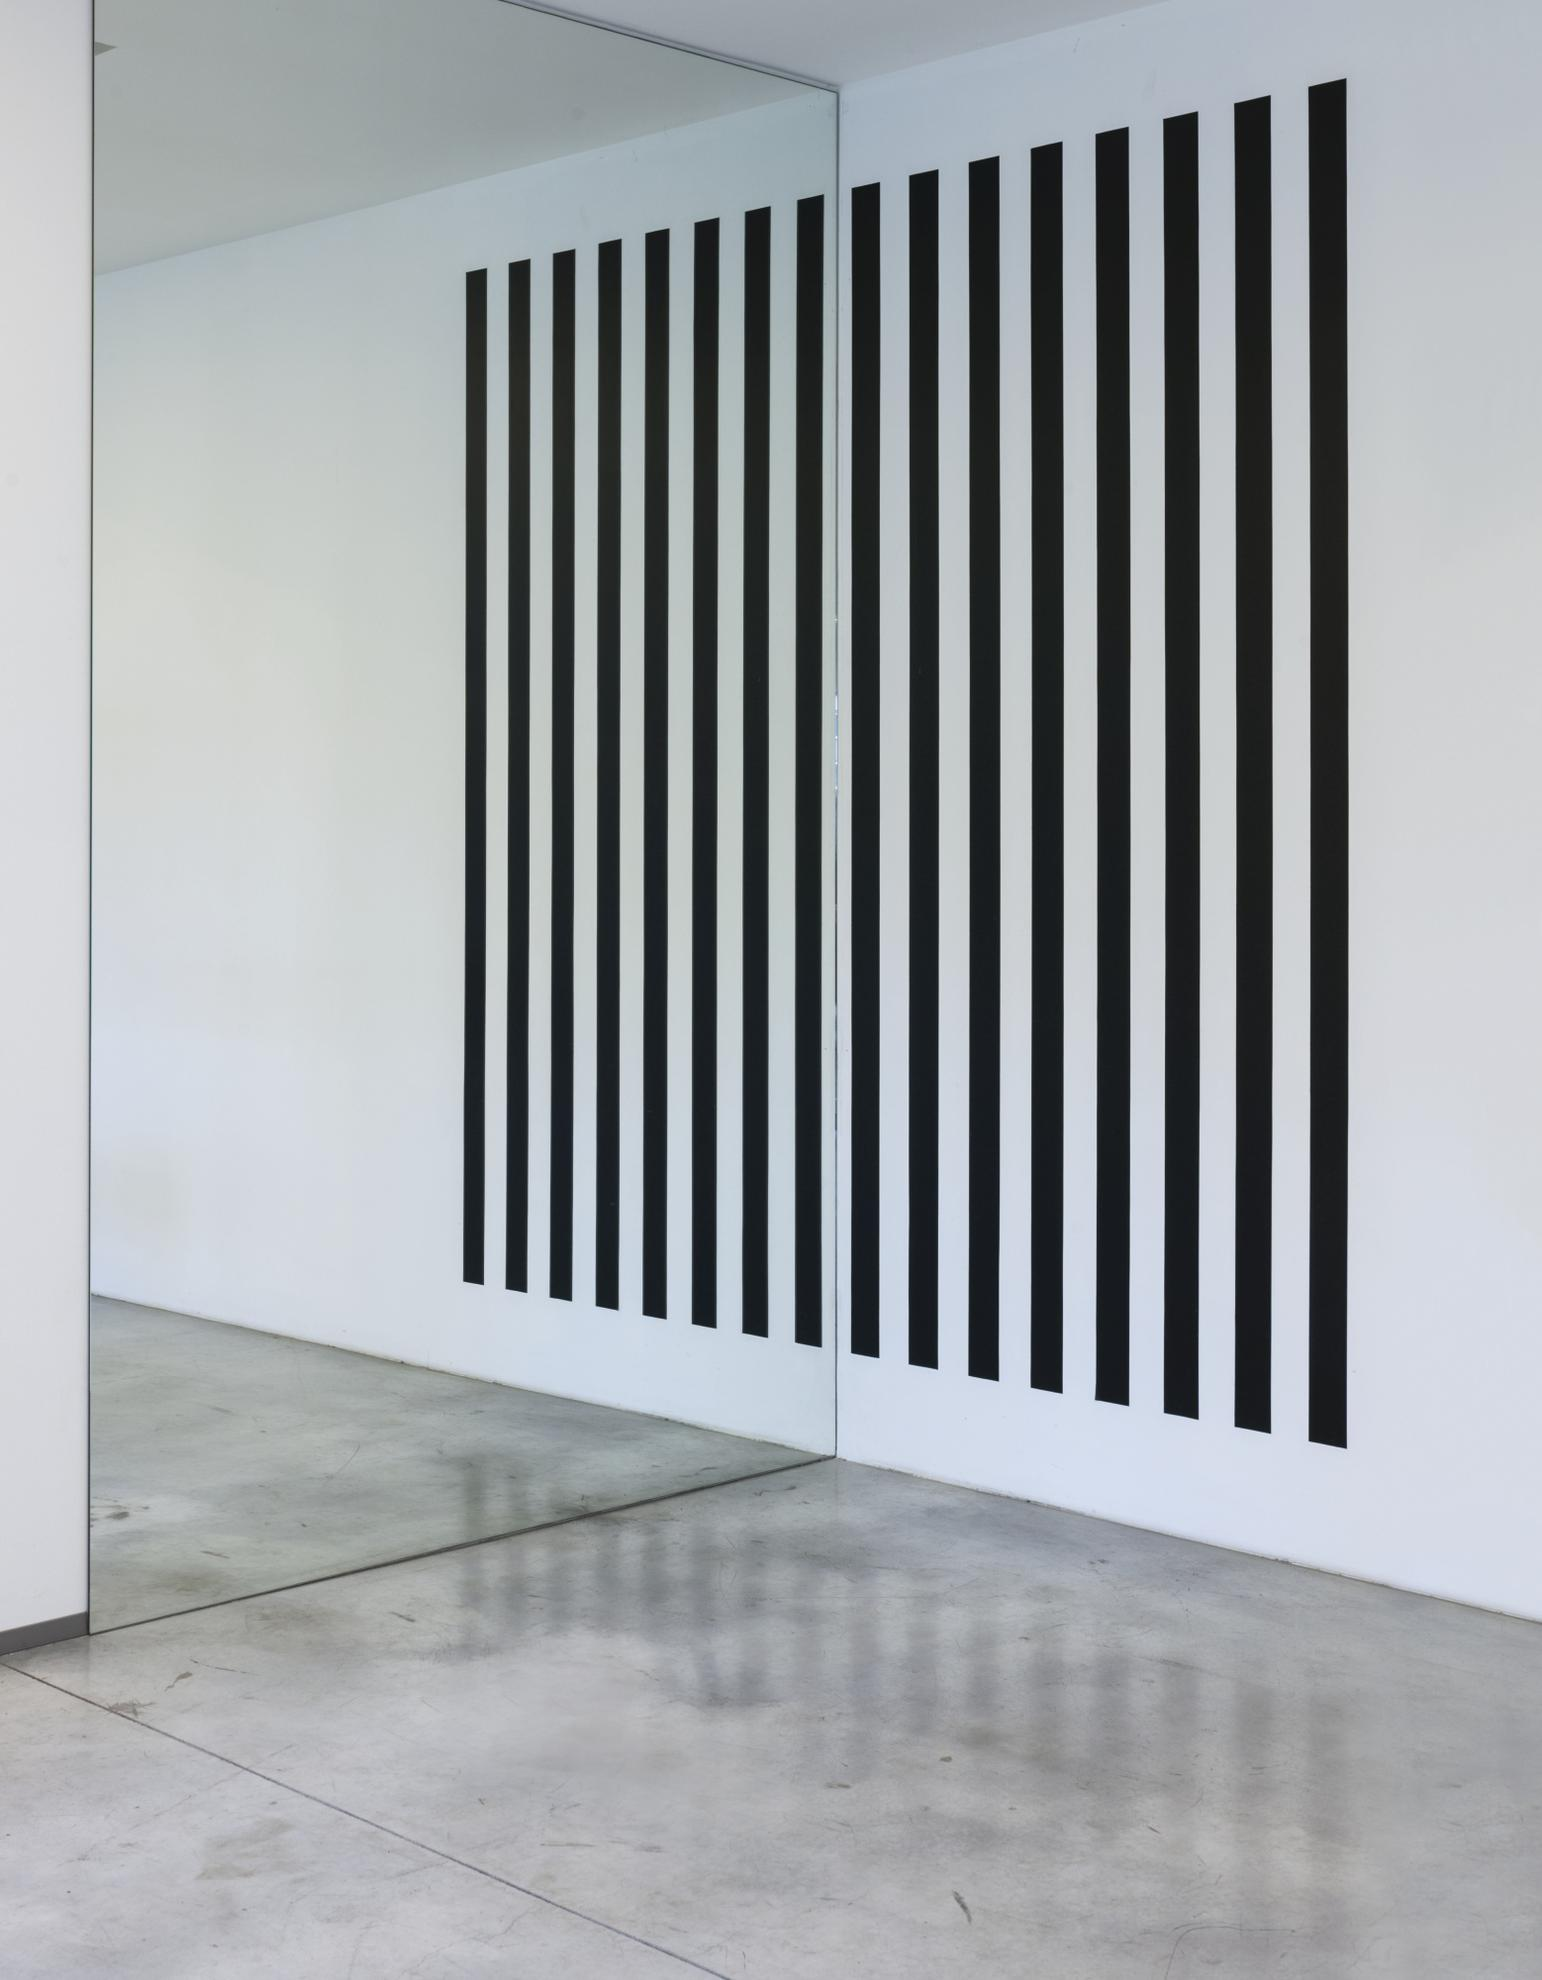 Daniel Buren-Le Carre Reconstruit - B, Travail In Situ-2007